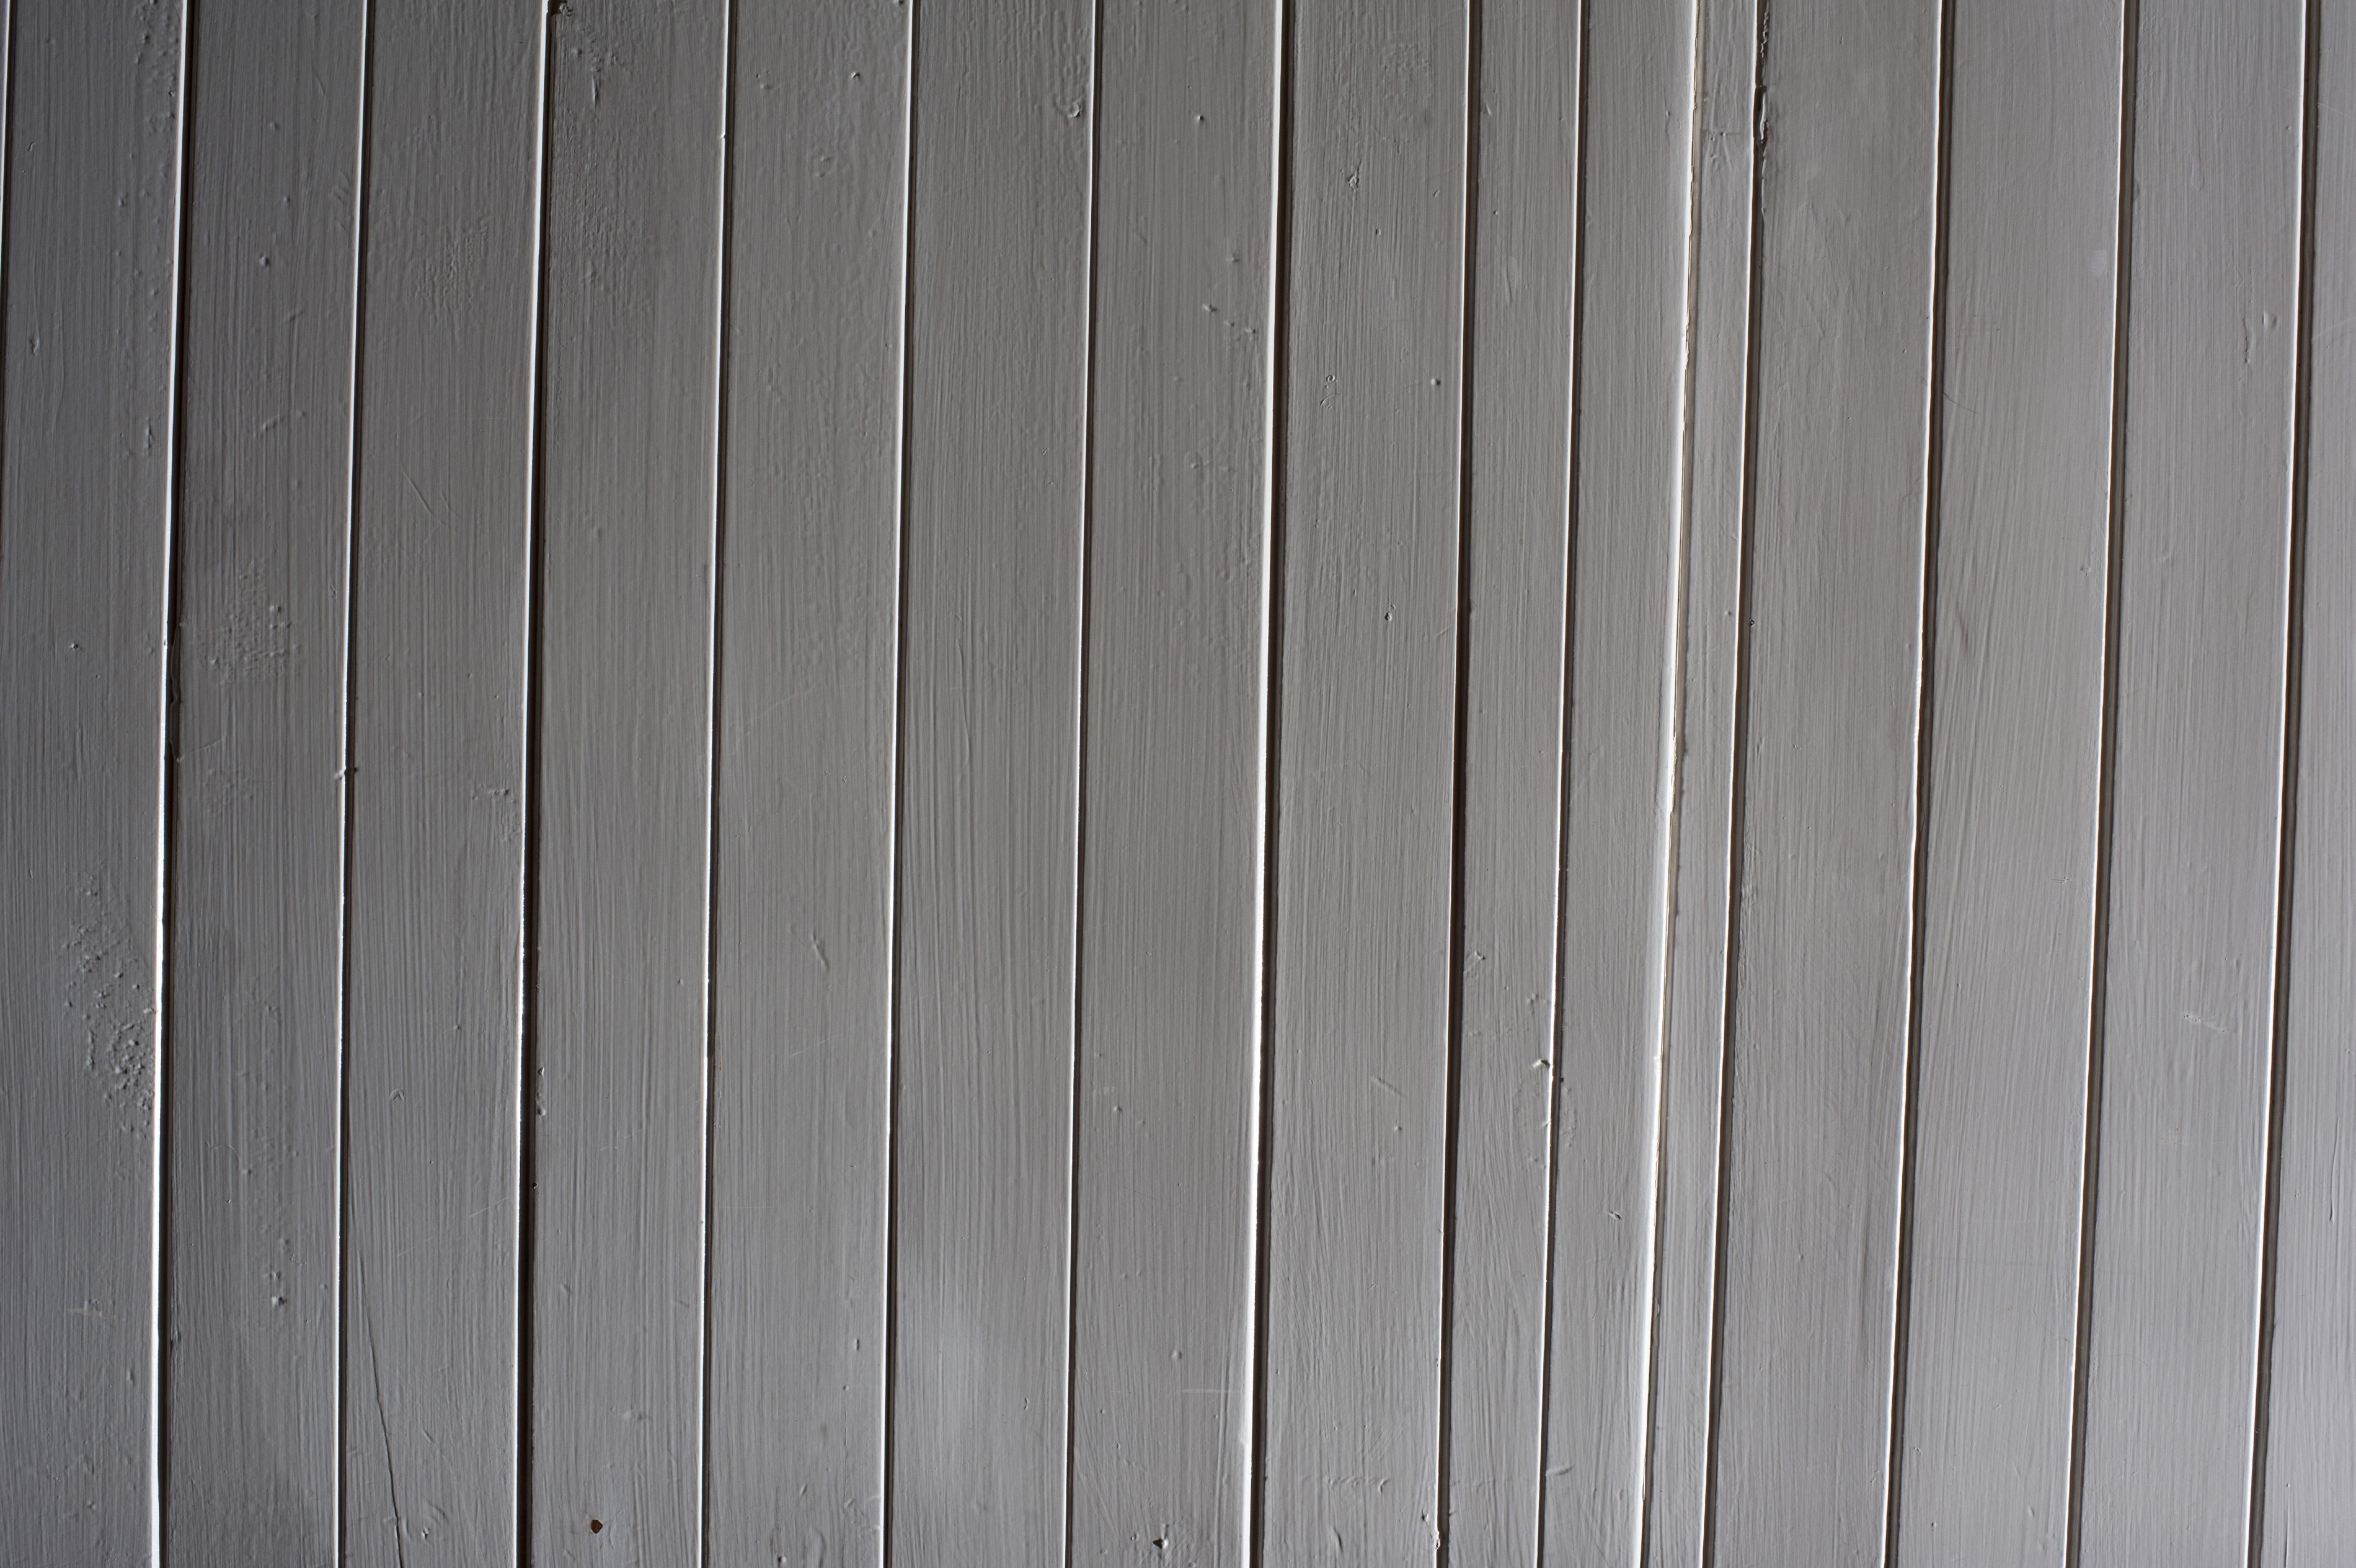 Painted Wood Planks Free Backgrounds And Textures